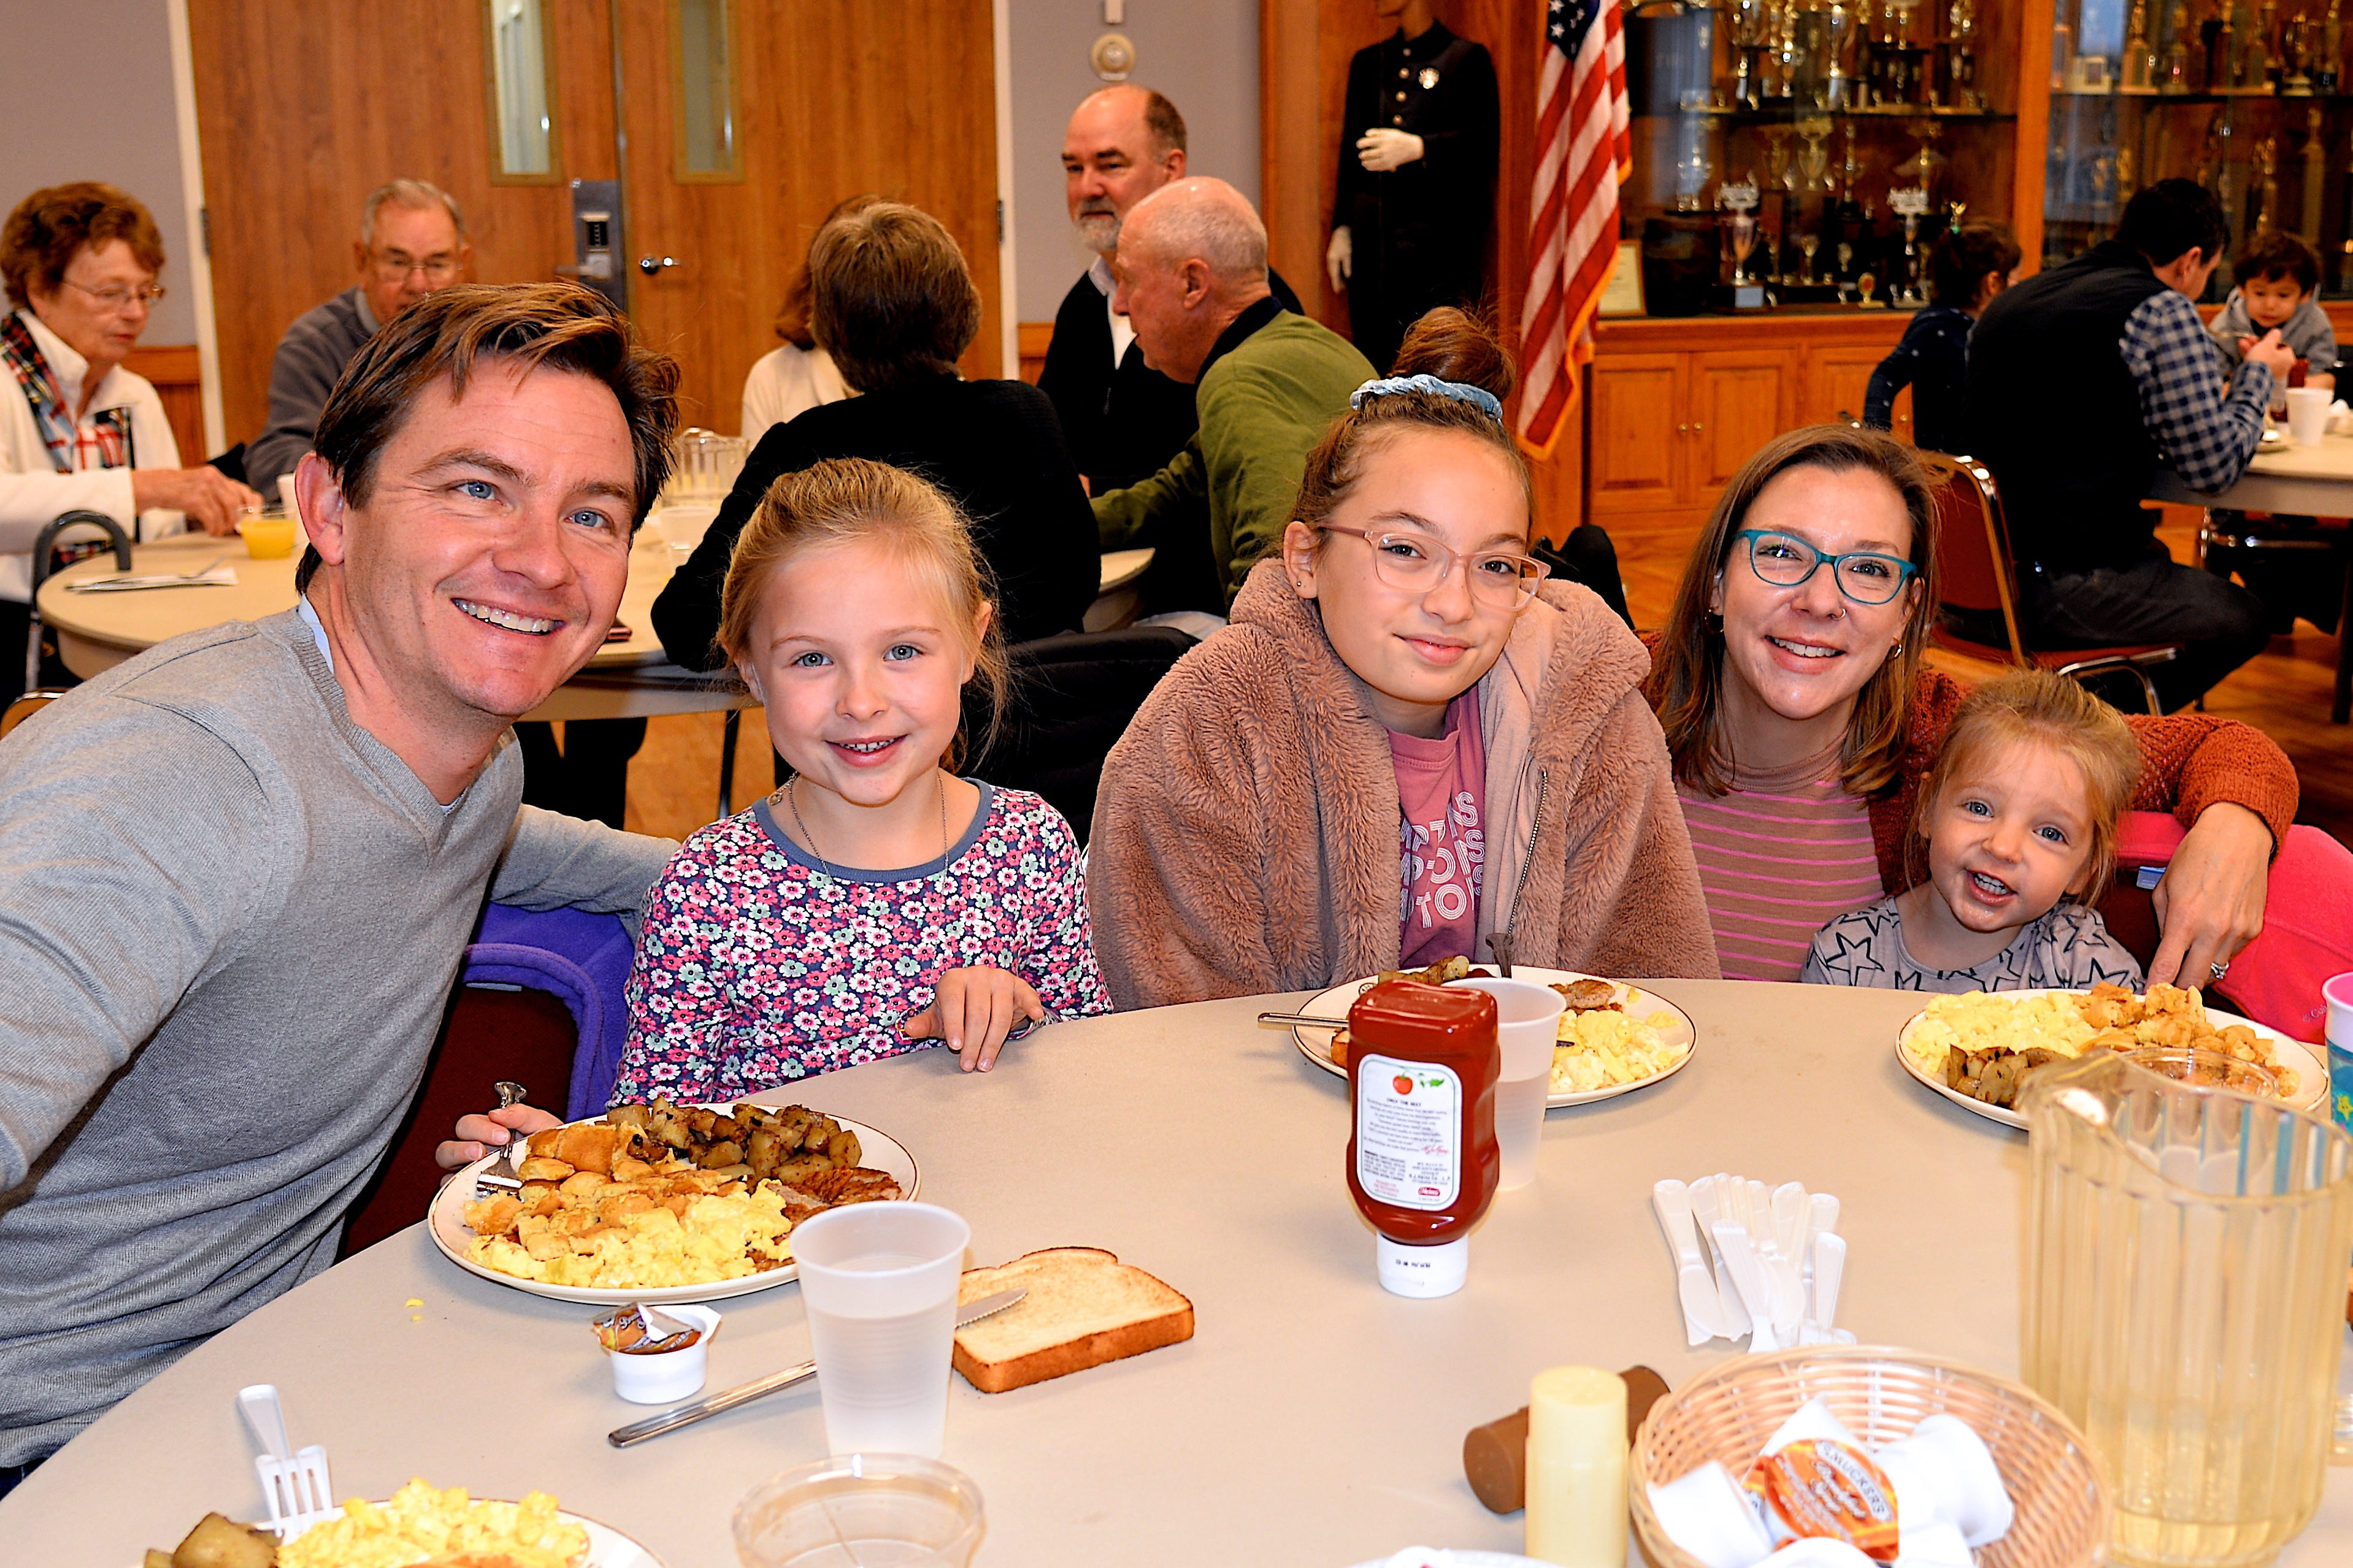 The East Hampton Fire Department hosted a pancake breakfast on Sunday, raising funds for the Eleanor Whitmore Early Childhood Center. Among those attended were members of the Feleppa family, from left, Alex, Fay, Ea, Jolie and Krissy.  KYRIL BROMLEY